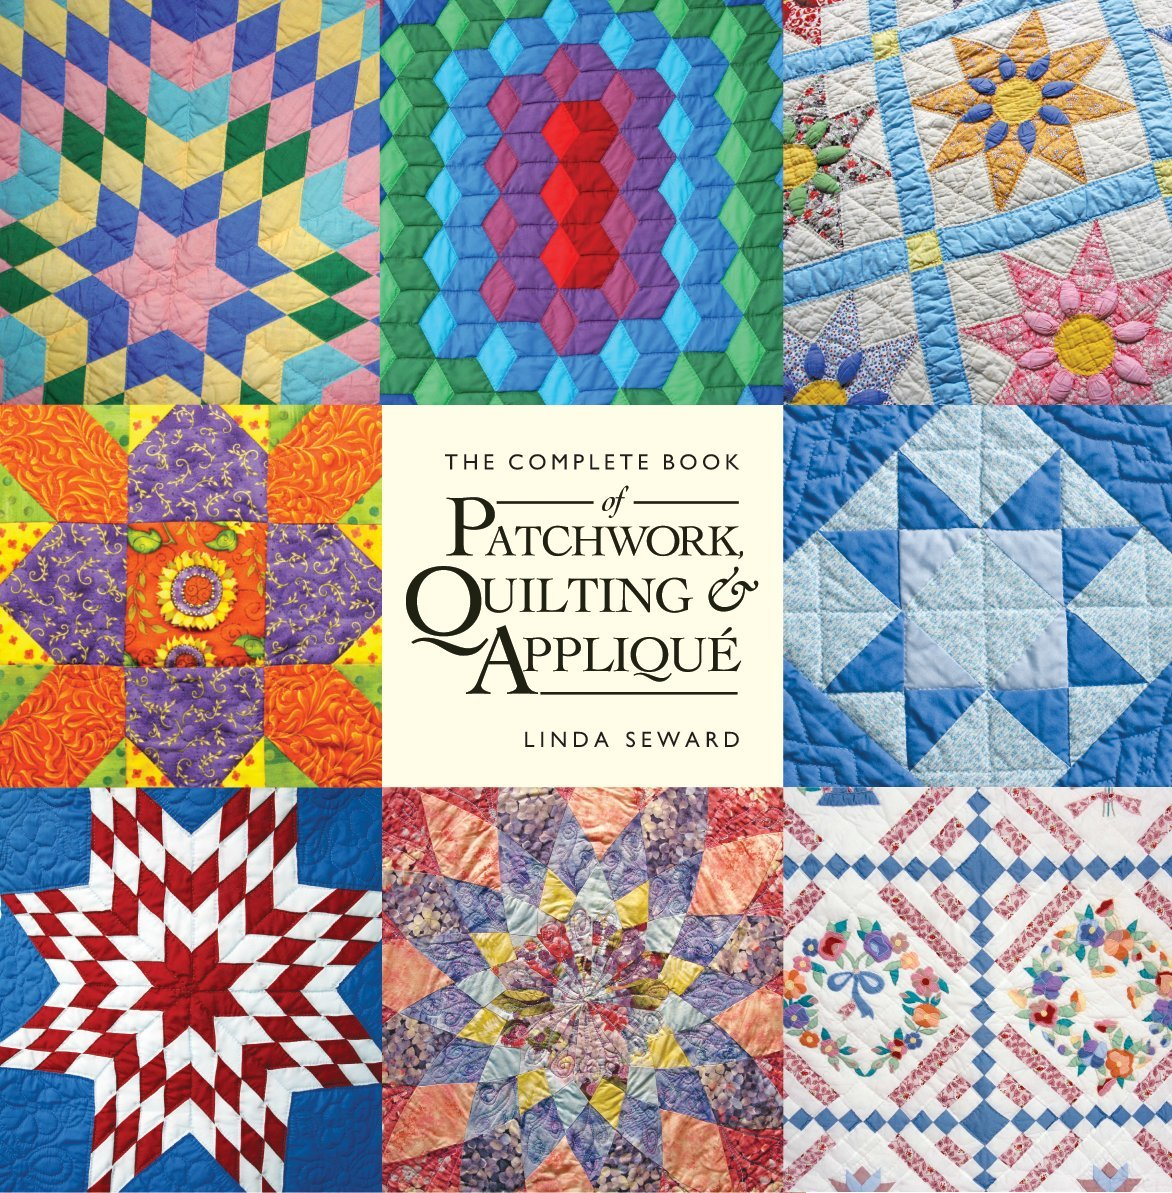 The Complete Book of Patchwork, Quilting and Applique: Linda Seward:  9781554078042: Amazon.com: Books